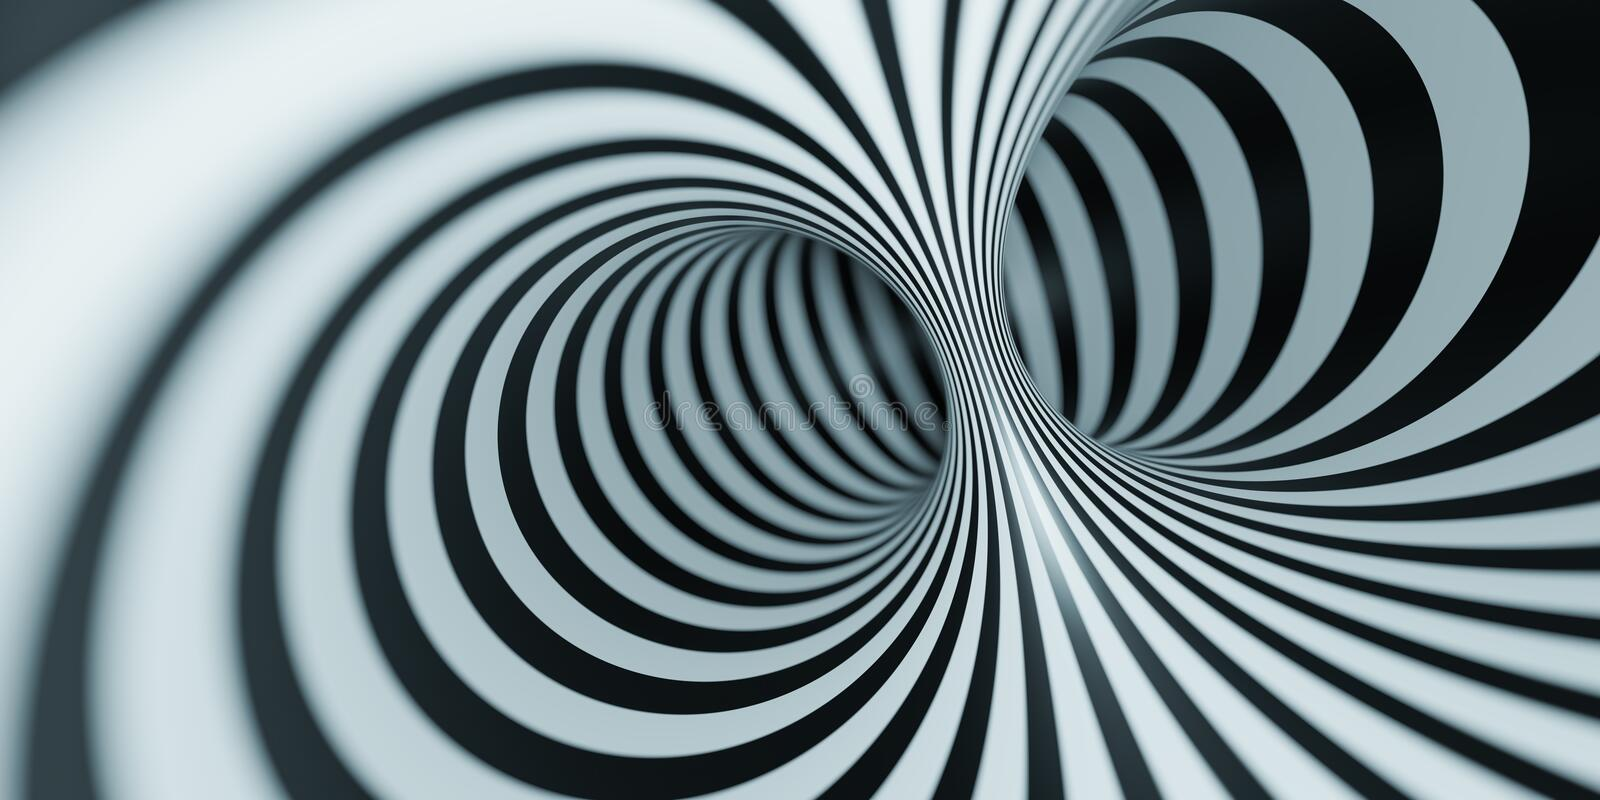 optical illusion black and white tunnel royalty free illustration